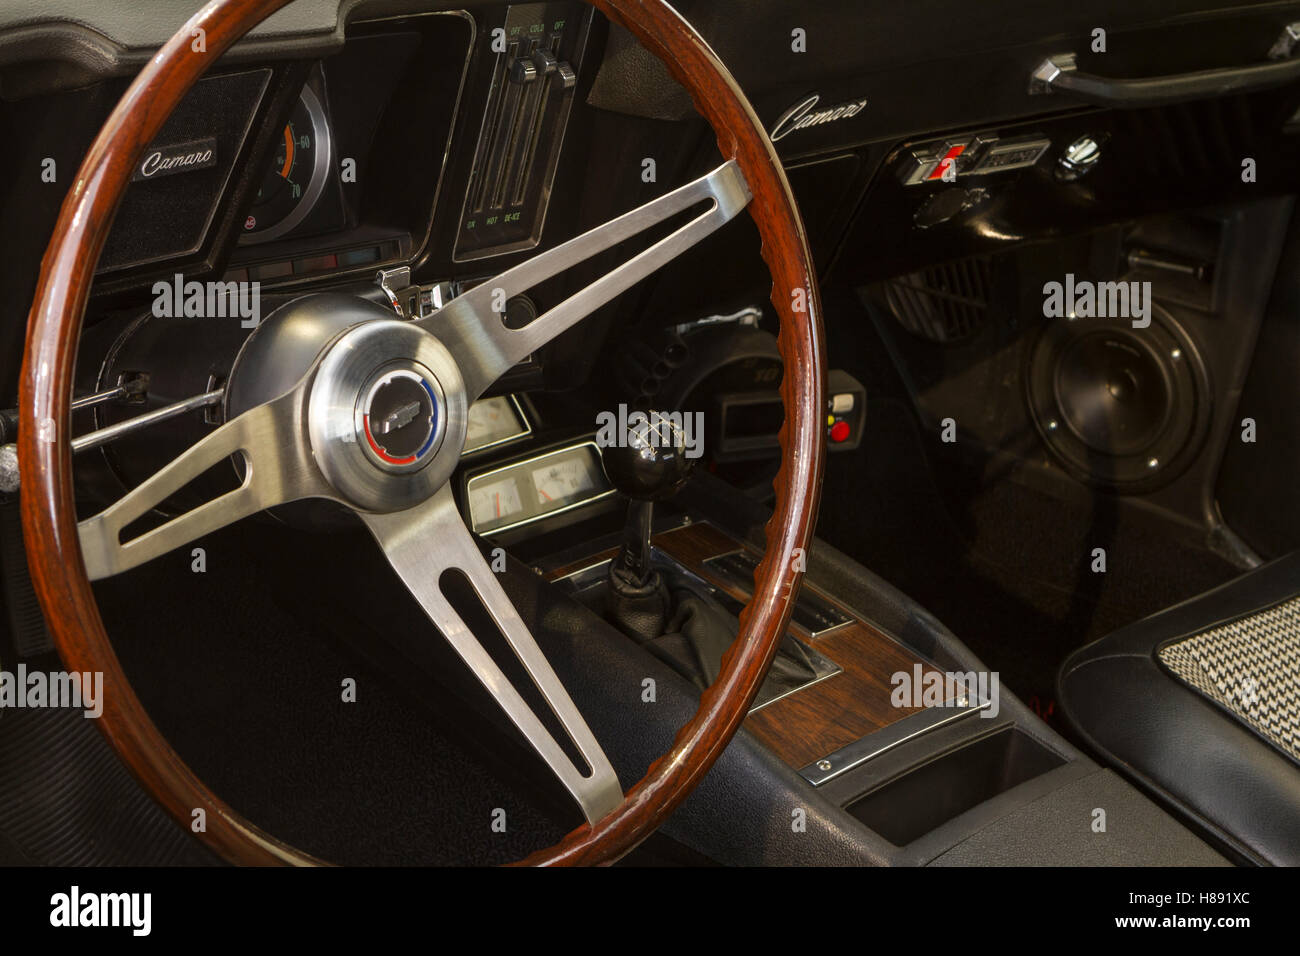 Dashboard of 1969 Chevrolet Camaro Stock Photo, Royalty Free Image ...